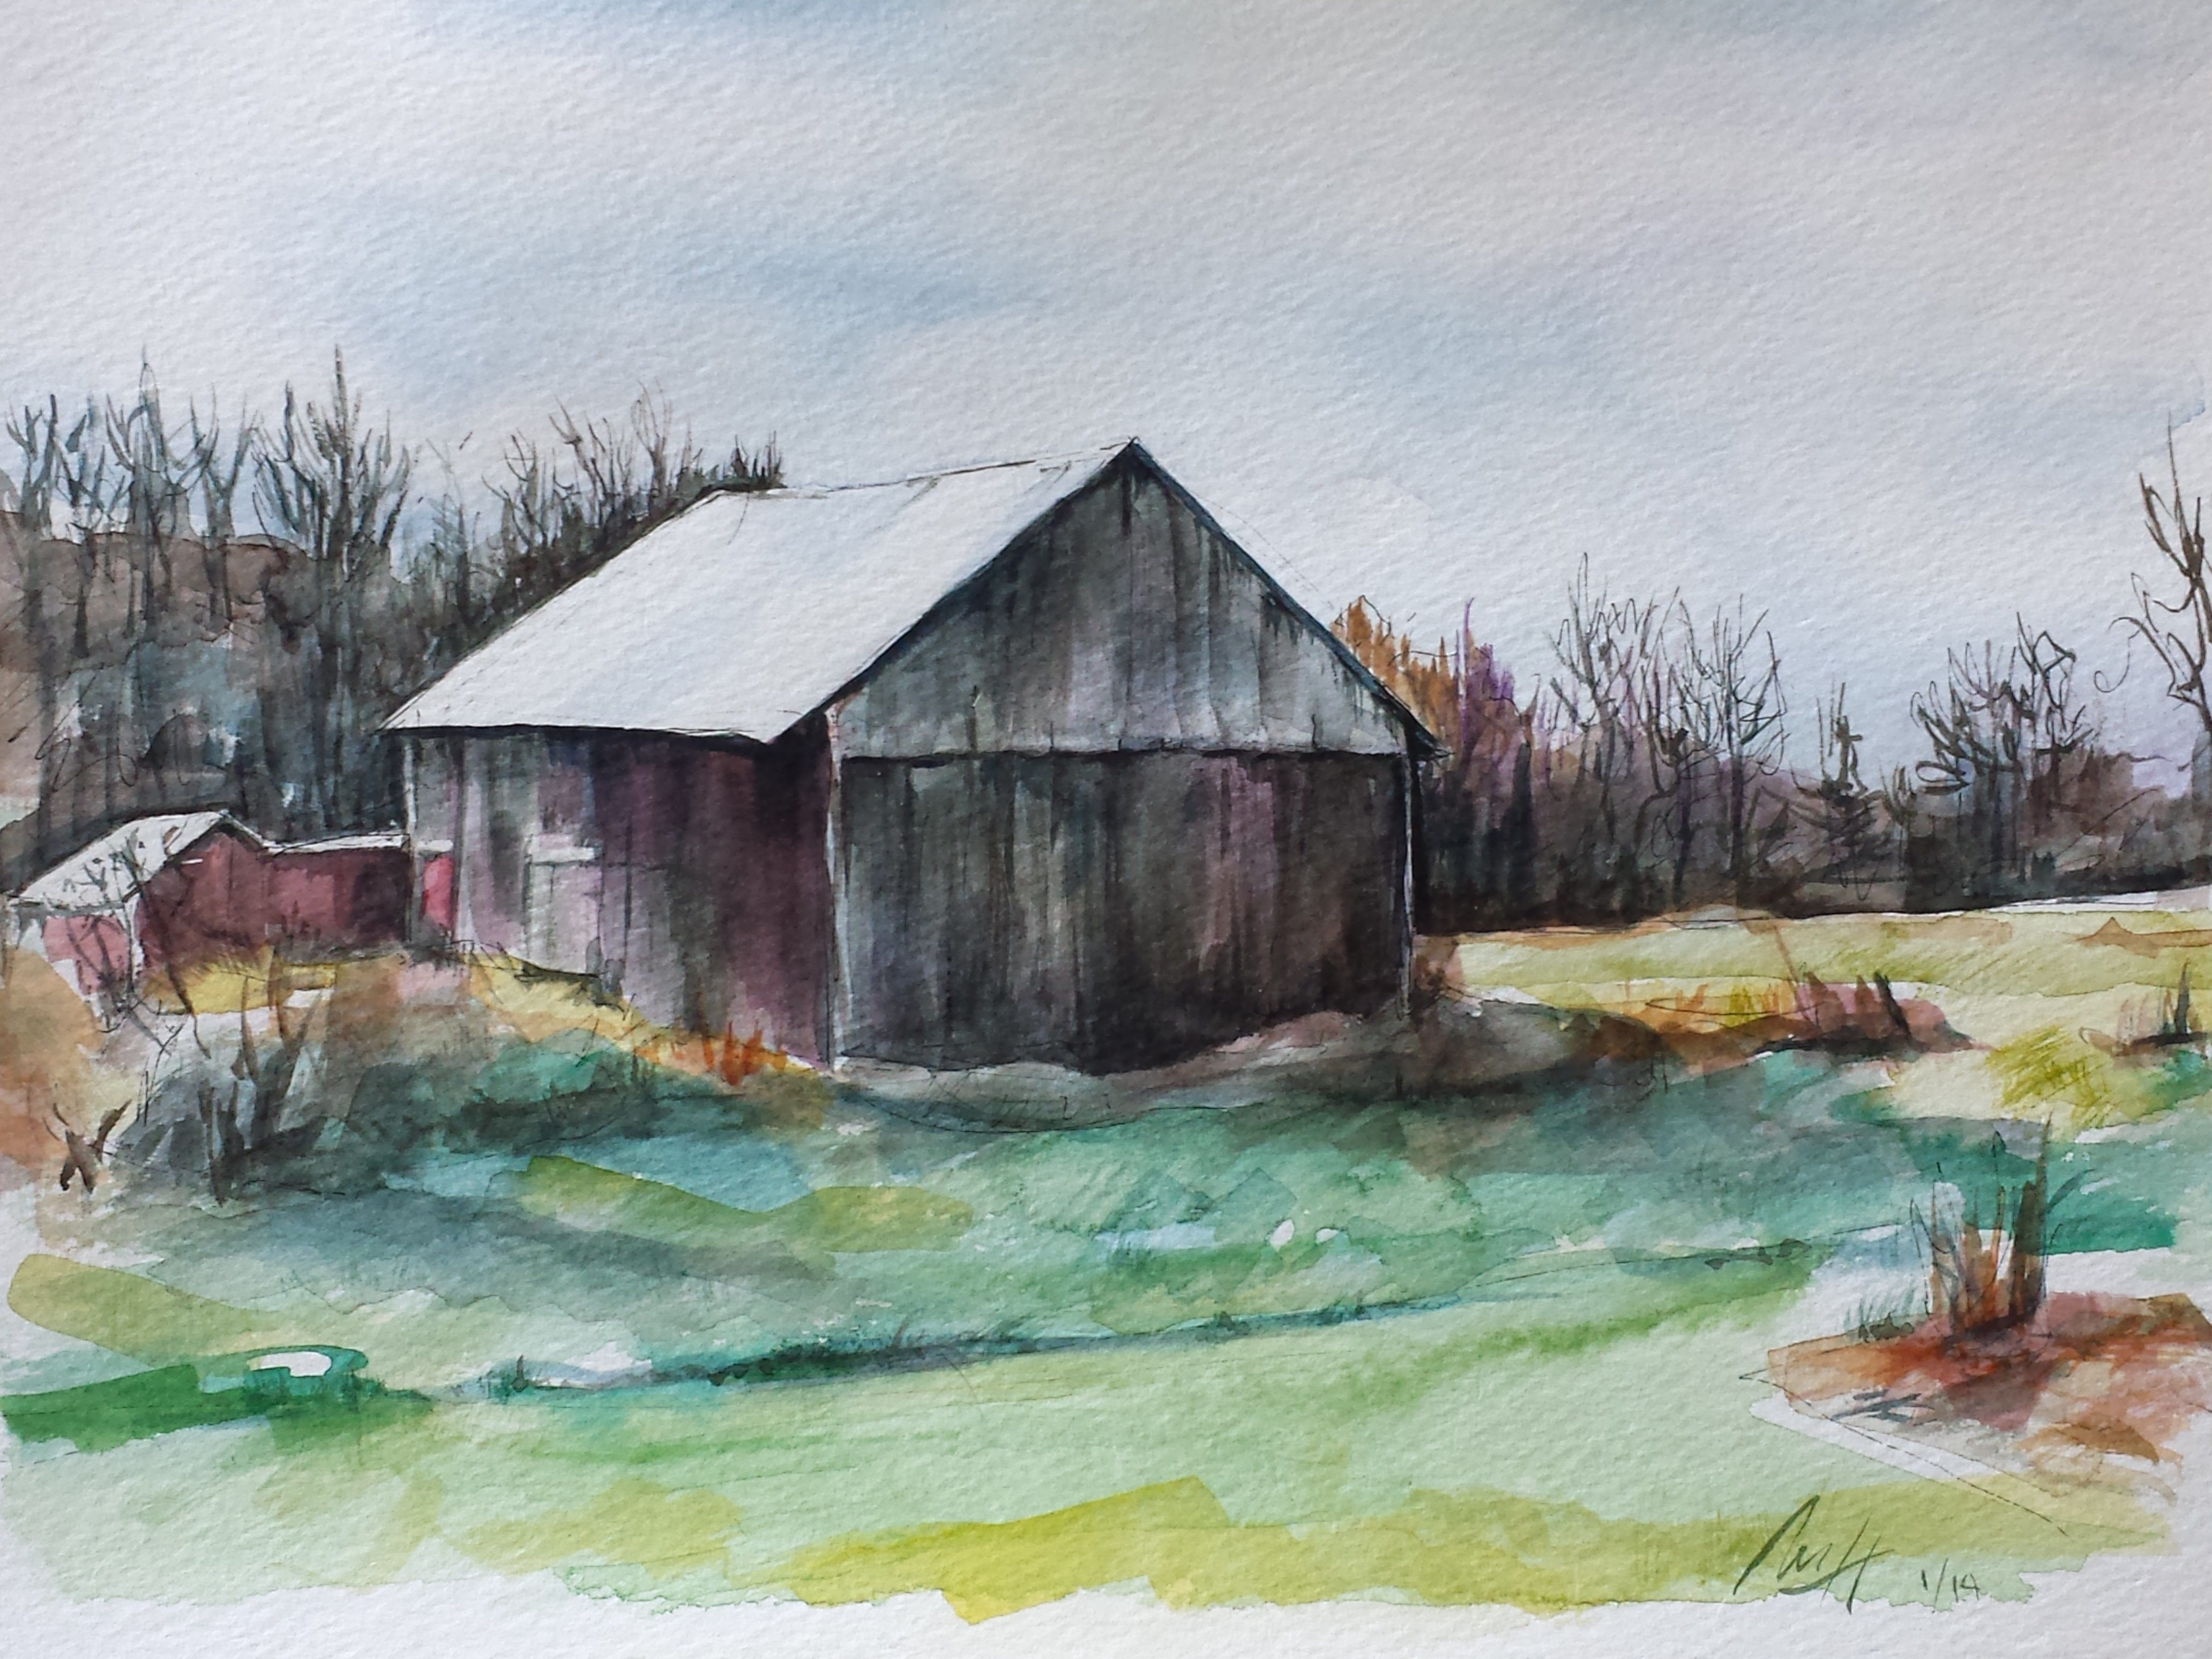 Merrilyne Hendrickson: 'lebaron family barn', 2015 Watercolor, Farm. An old barn belonging to high school friend s family is fondly nestled in the peaceful Cambridge Valley.  So many colors in old wood only watercolor can capture...